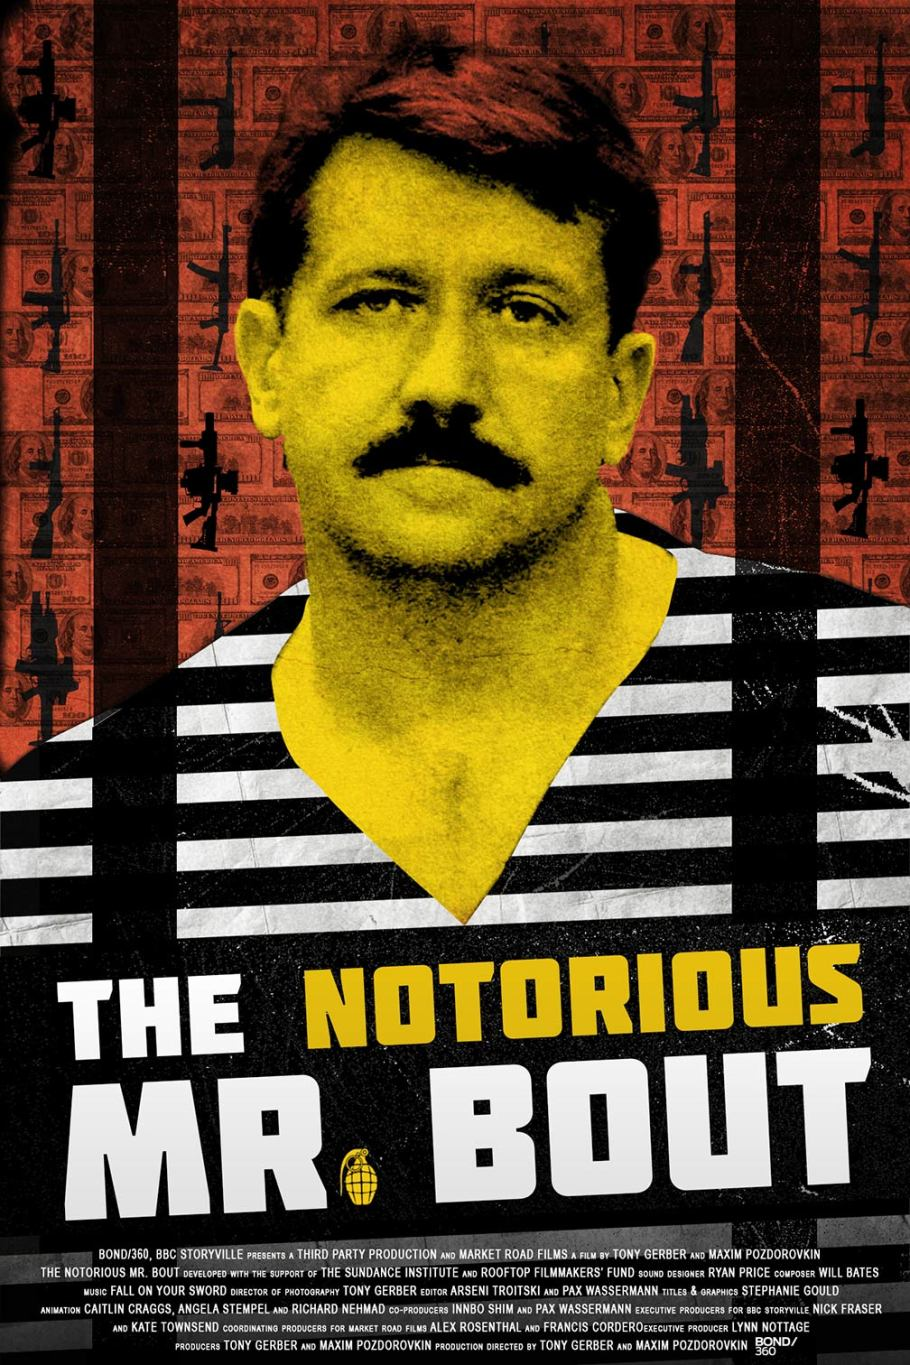 The Notorious Mr. Bout (2015) Poster #2 - Trailer Addict